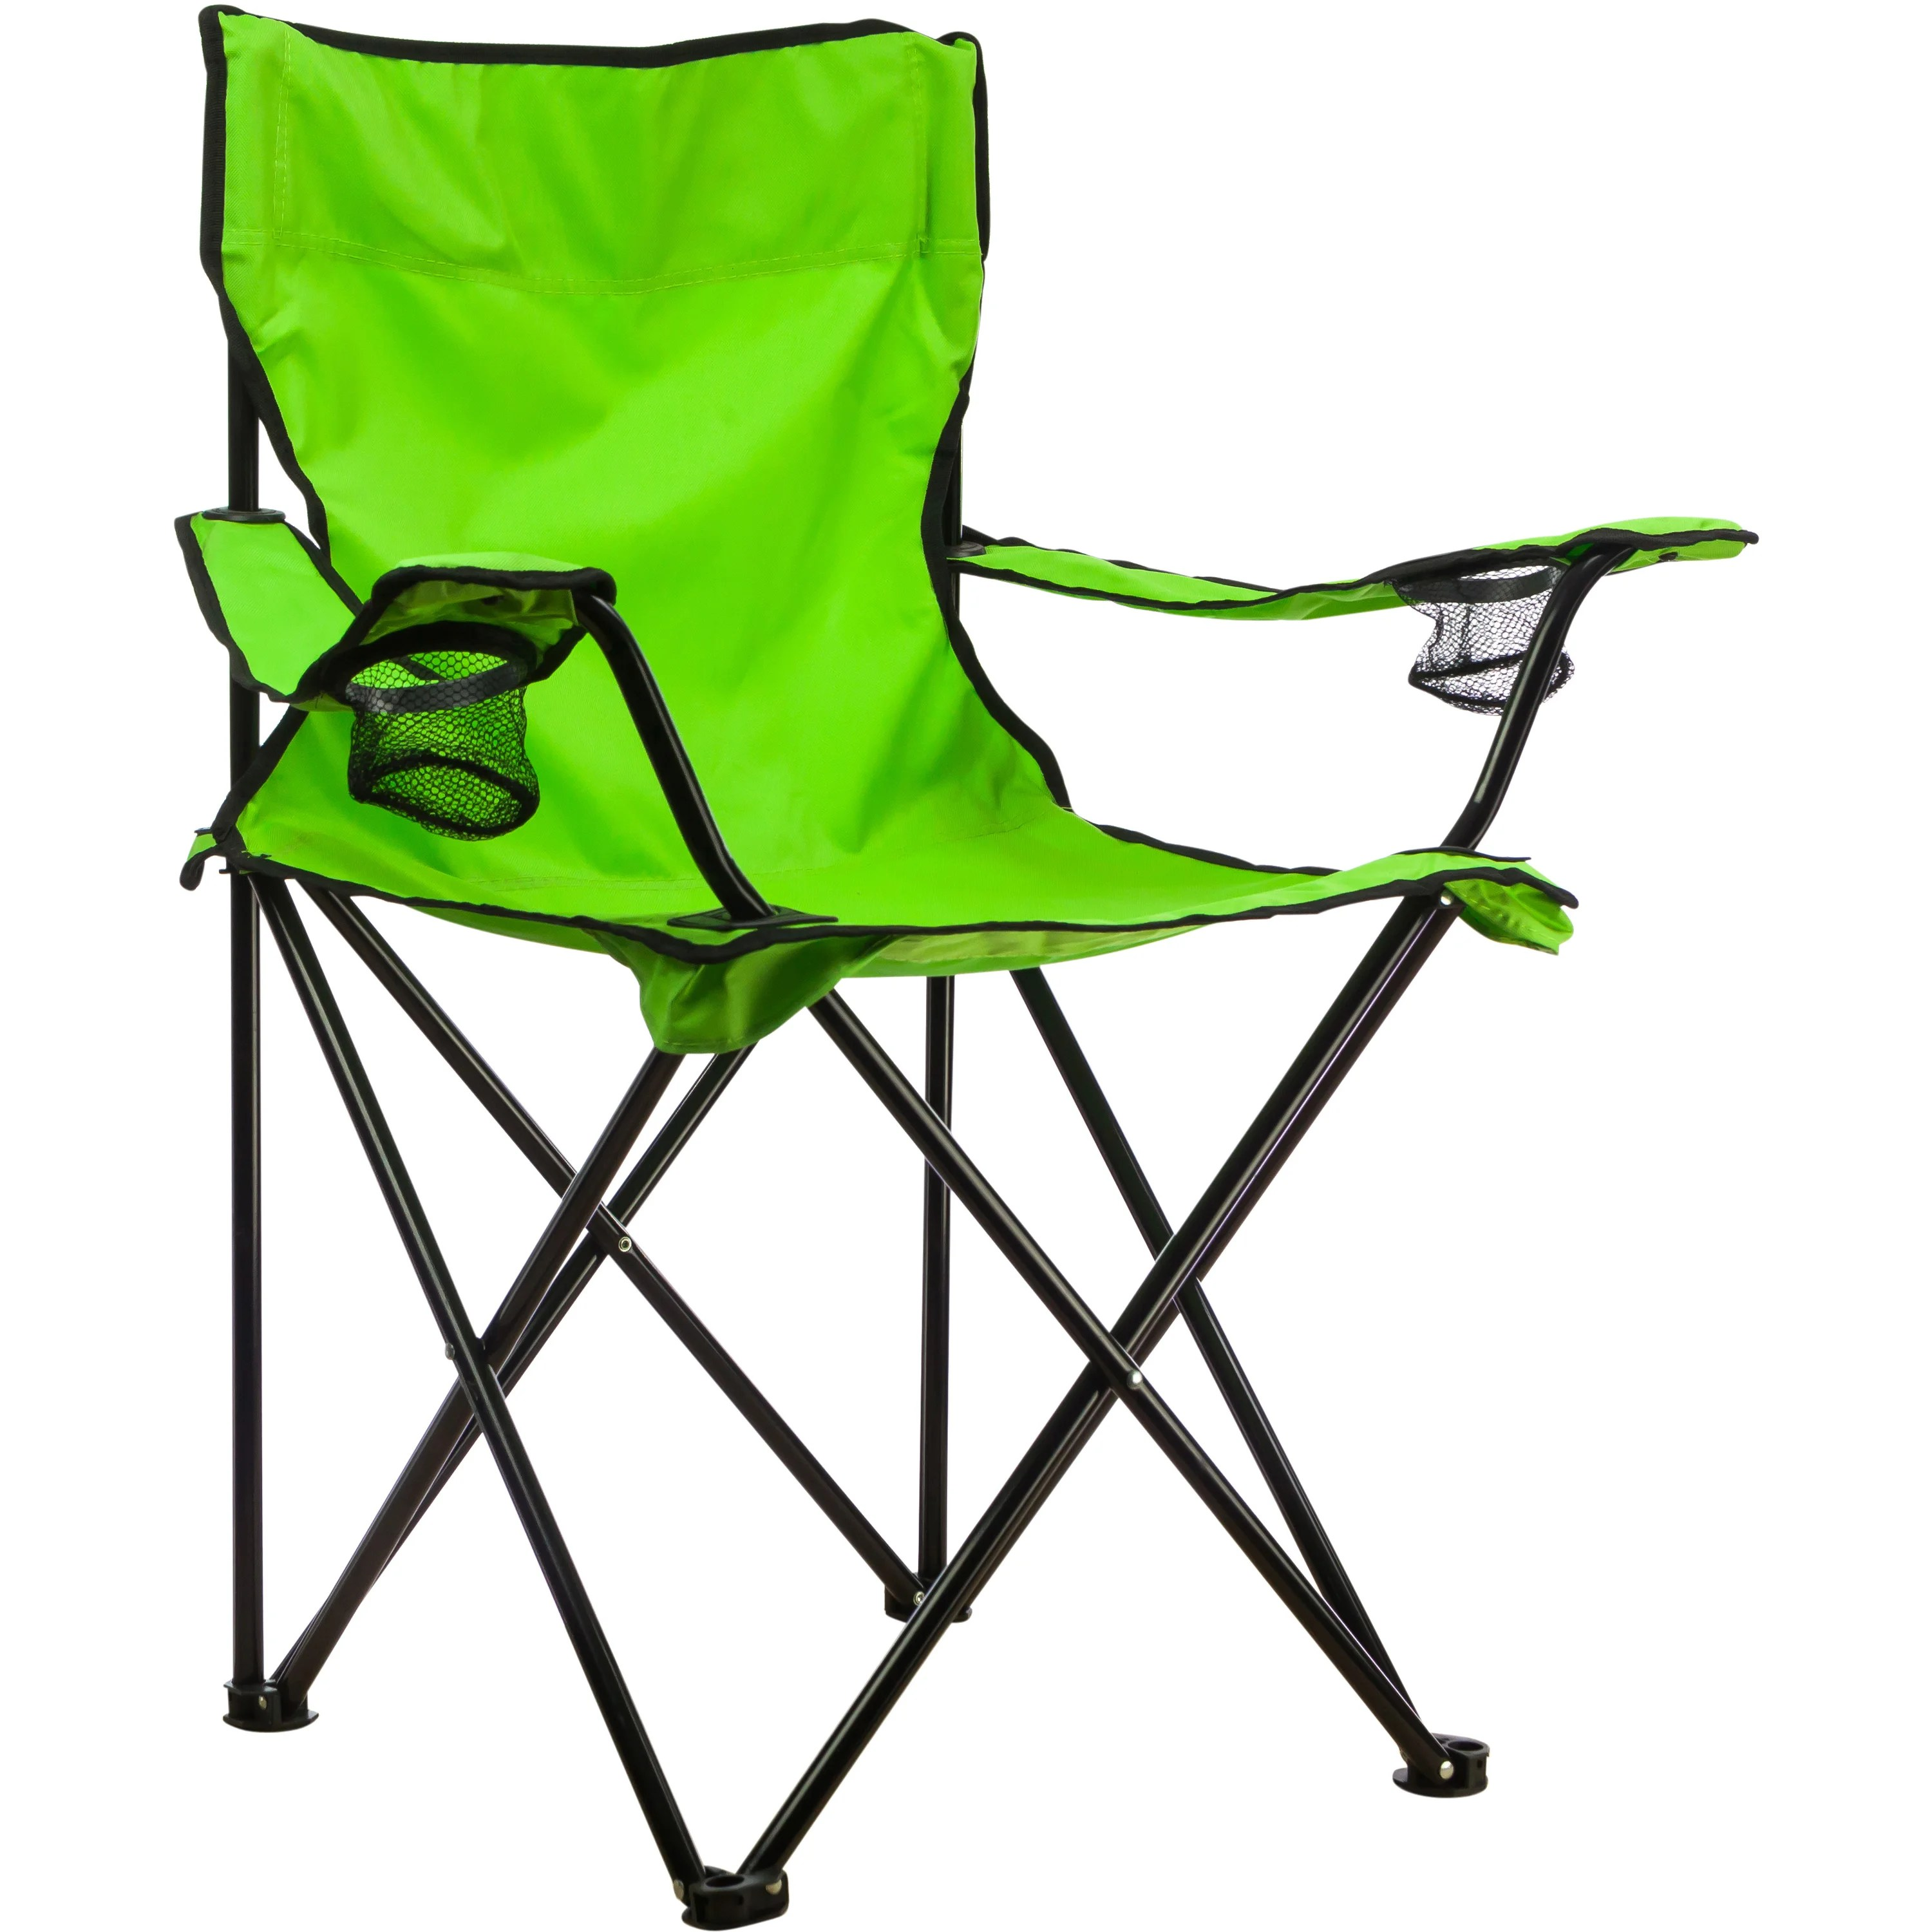 Chairs Folding Folding Chair With Carrying Bag